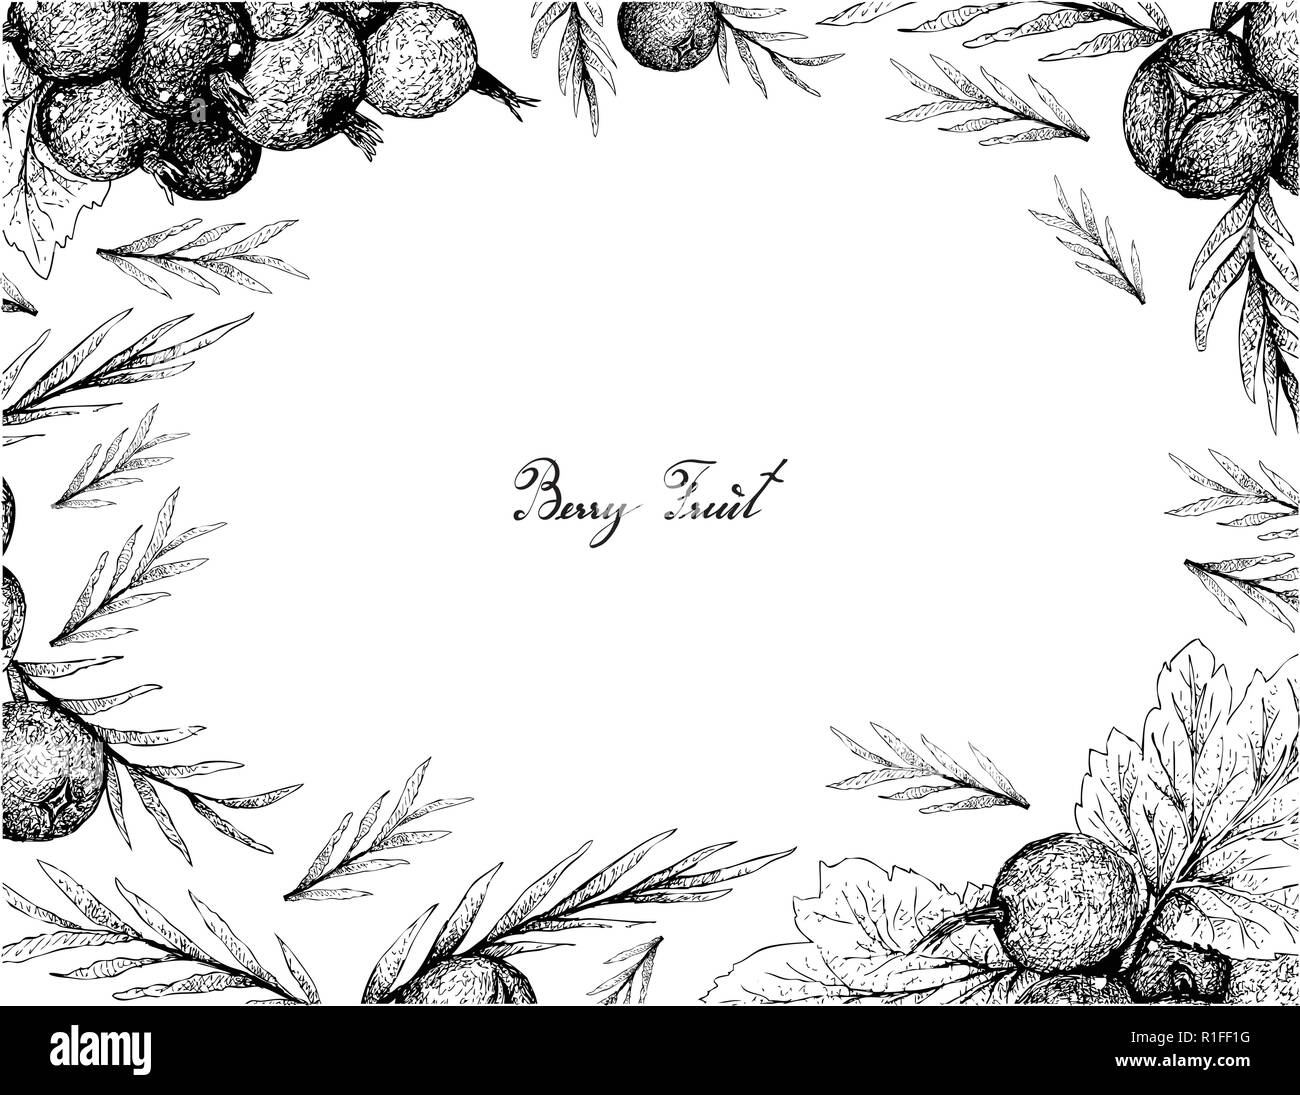 Berry Fruit, Illustration Frame of Hand Drawn Sketch of Jostaberries and Juniper Berries Isolated on White Background. - Stock Vector